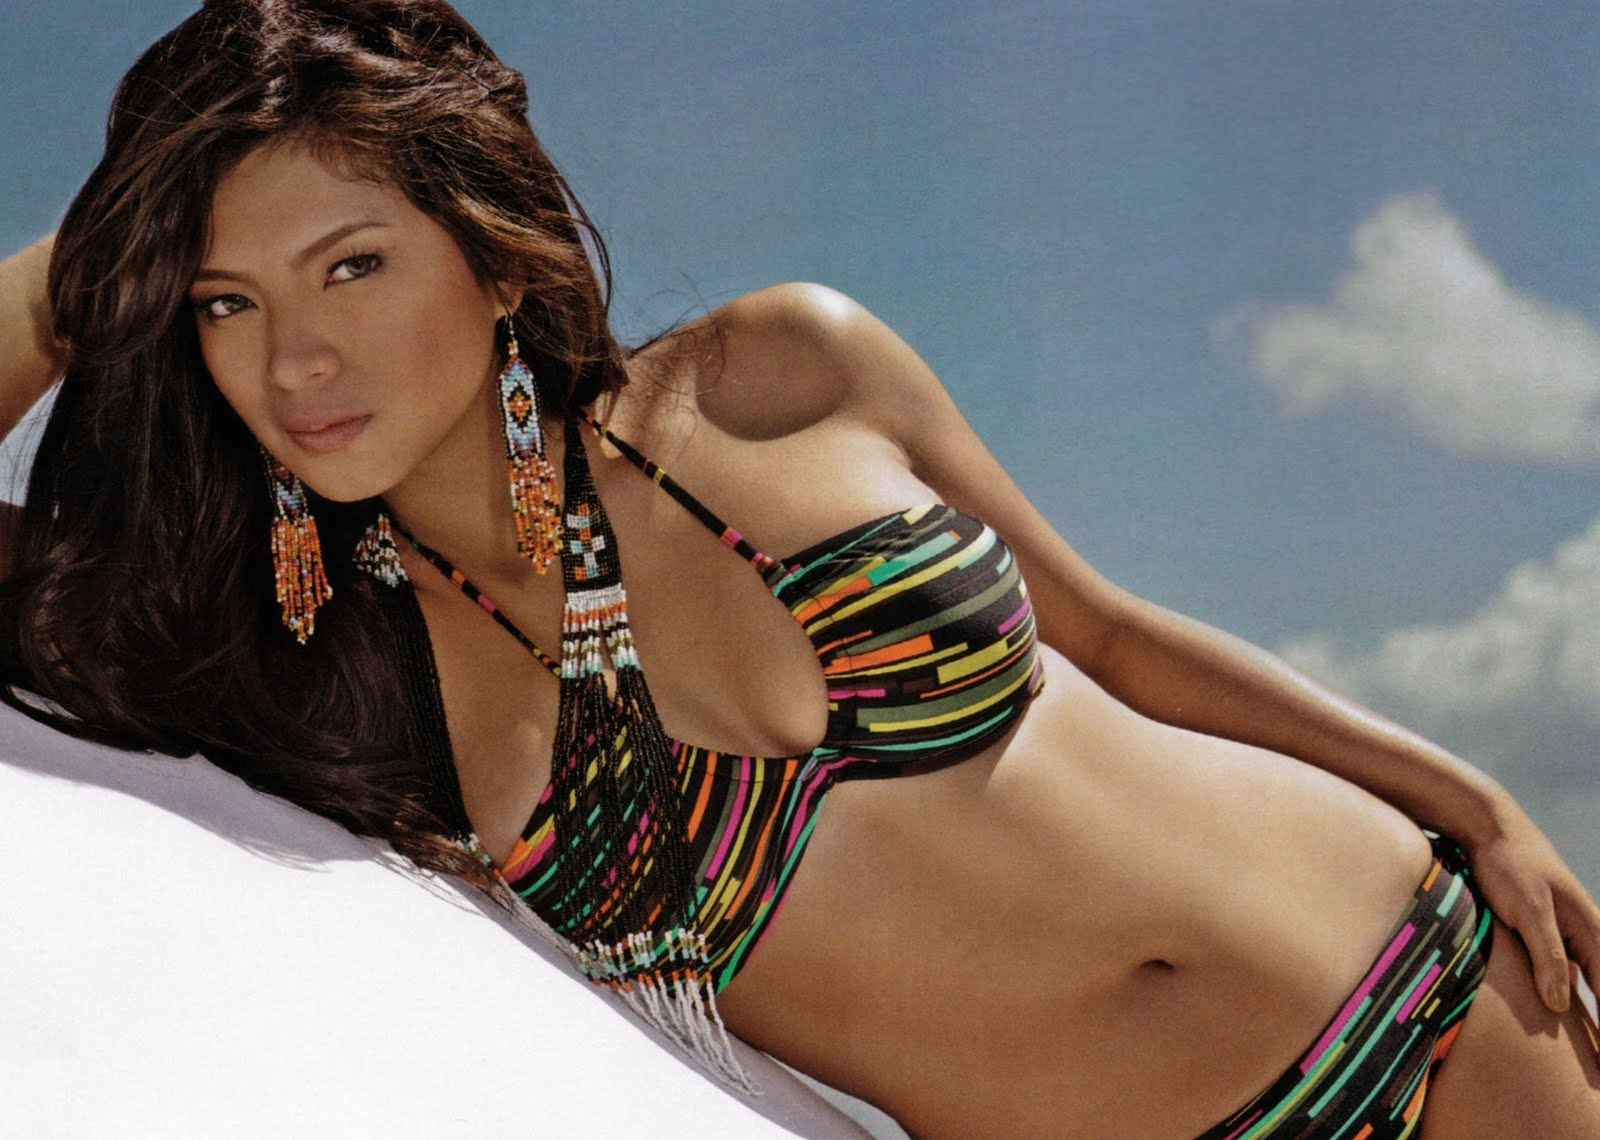 www_angel locsin scandals_com http://allpinays.blogspot.com/2012/02/hot-photos-of-angel-locsin.html